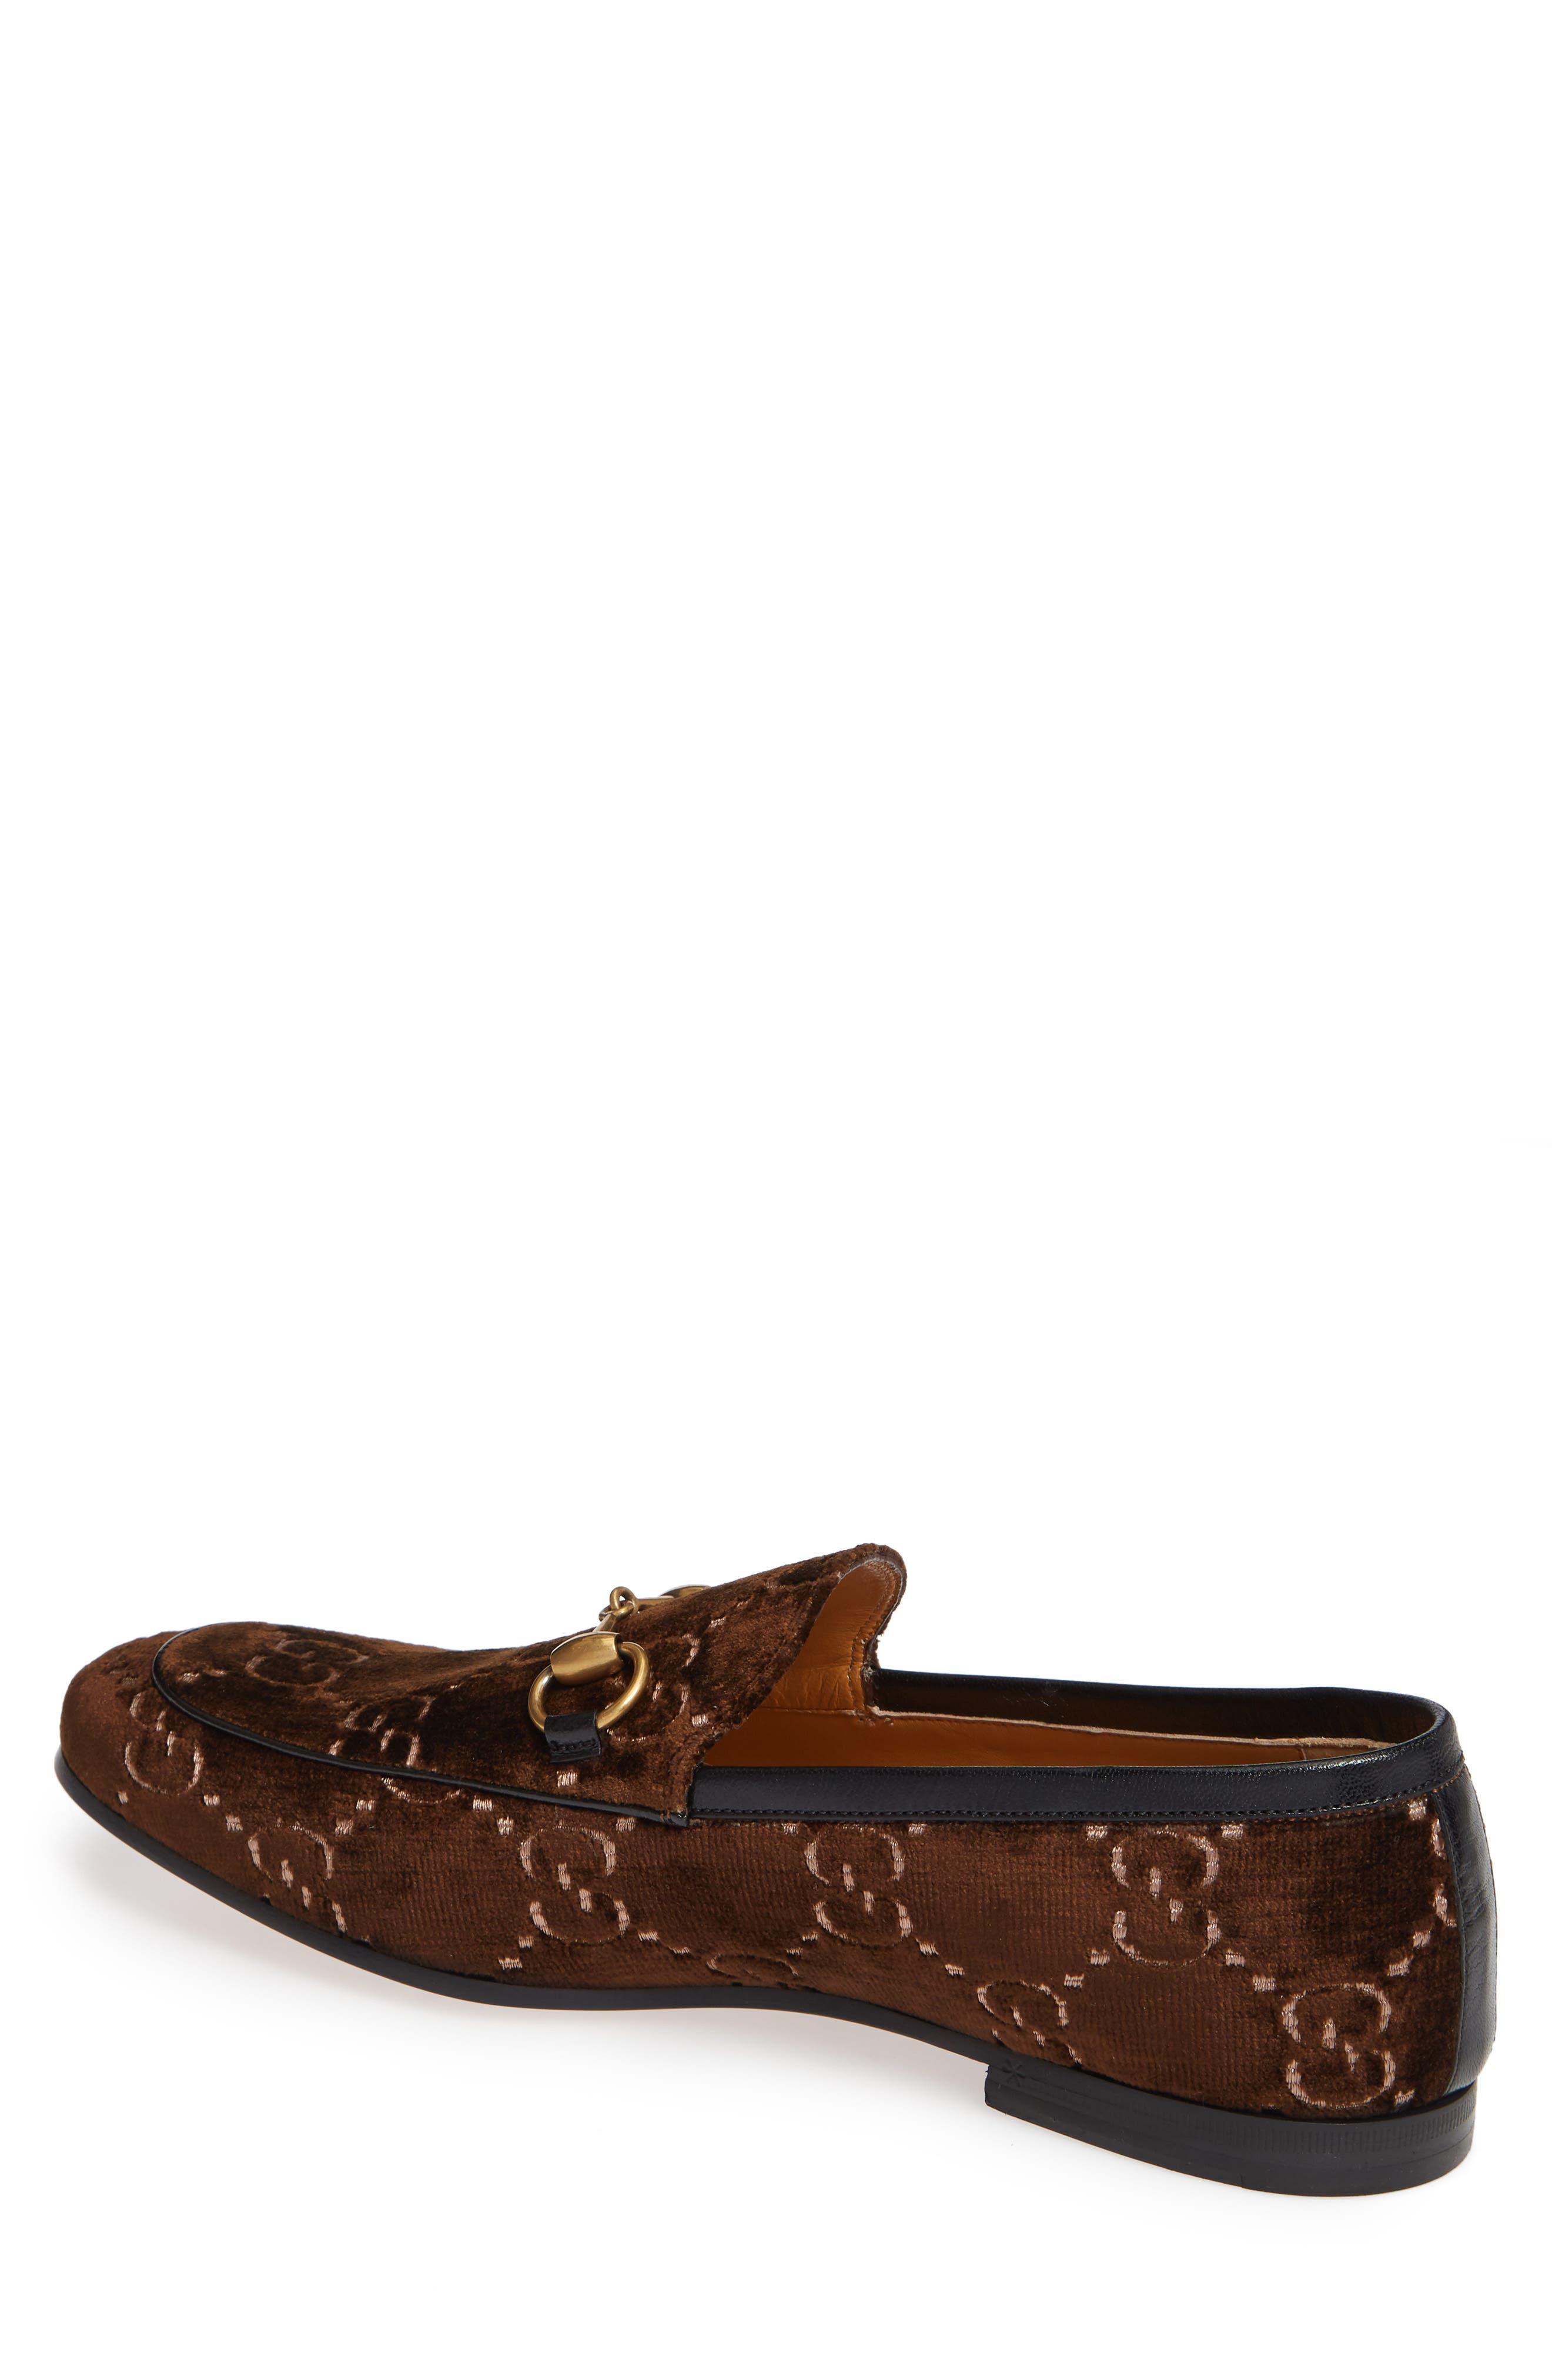 Jordaan GG Velvet Loafer,                             Alternate thumbnail 2, color,                             BROWN/ NERO